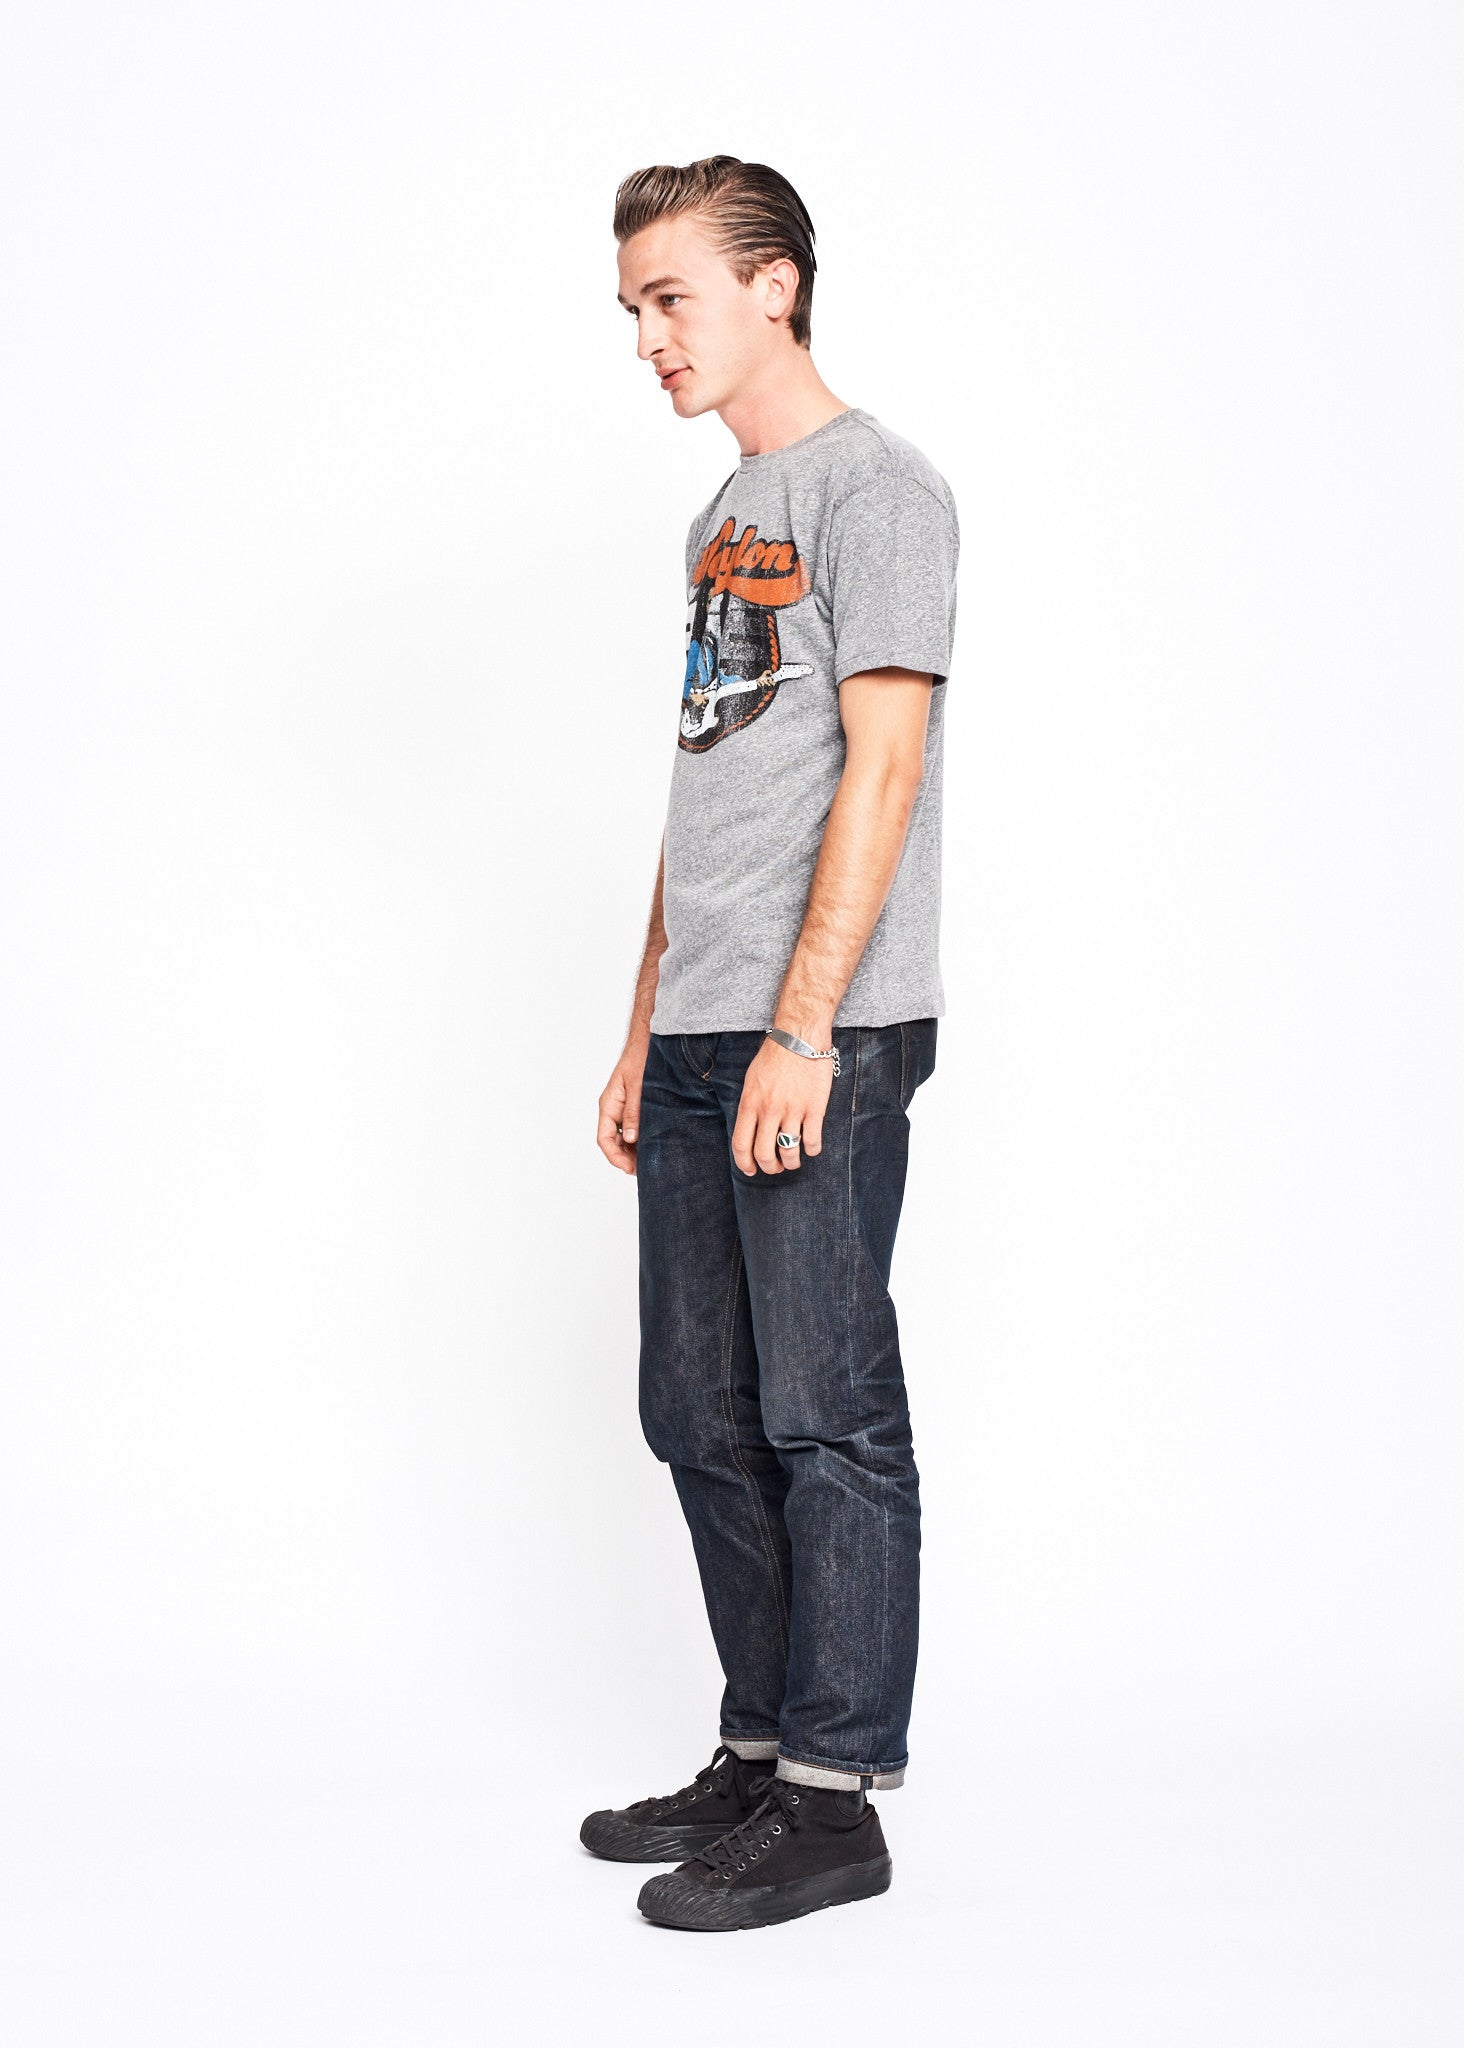 Flying W Guitar Men's Crew - Heather Grey